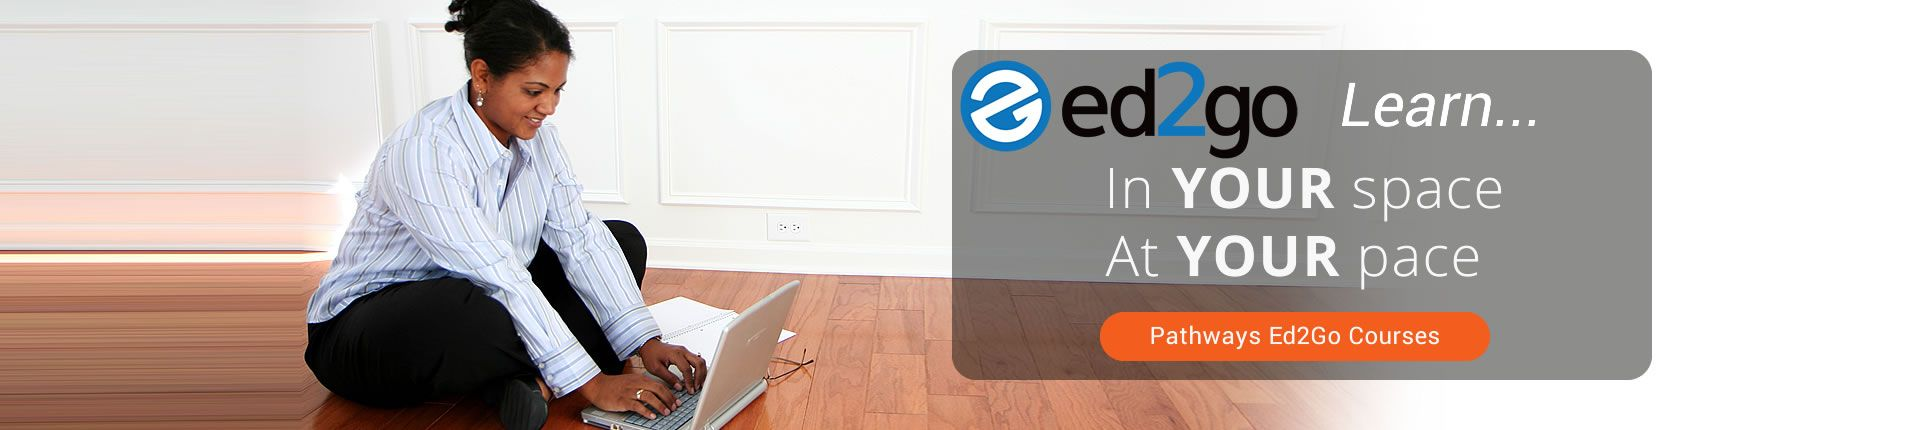 ed2go online learning